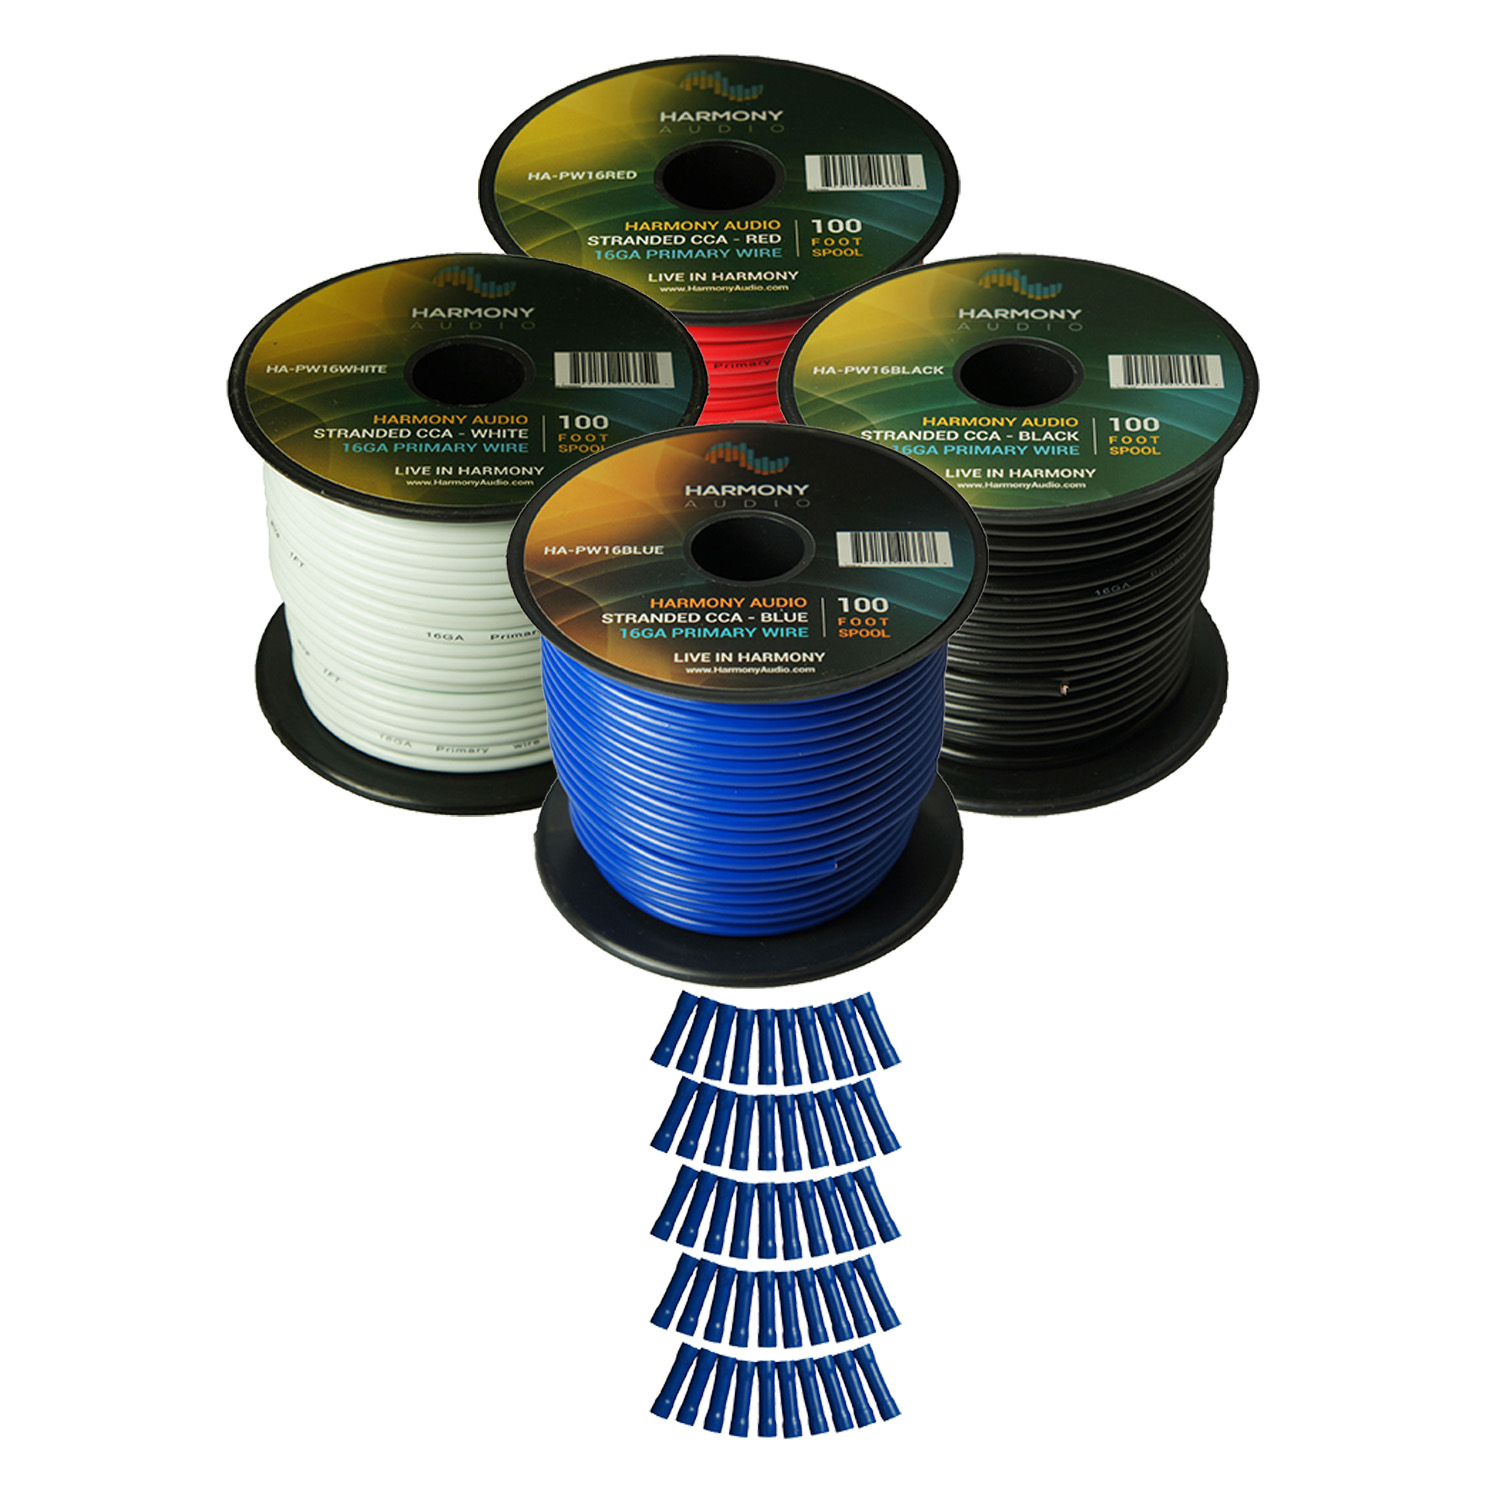 Harmony Audio Primary Single Conductor 16 Gauge Power or Ground Wire - 4 Rolls - 400 Feet - 4 Color Mix for Car Audio / Trailer / Model Train / Remote